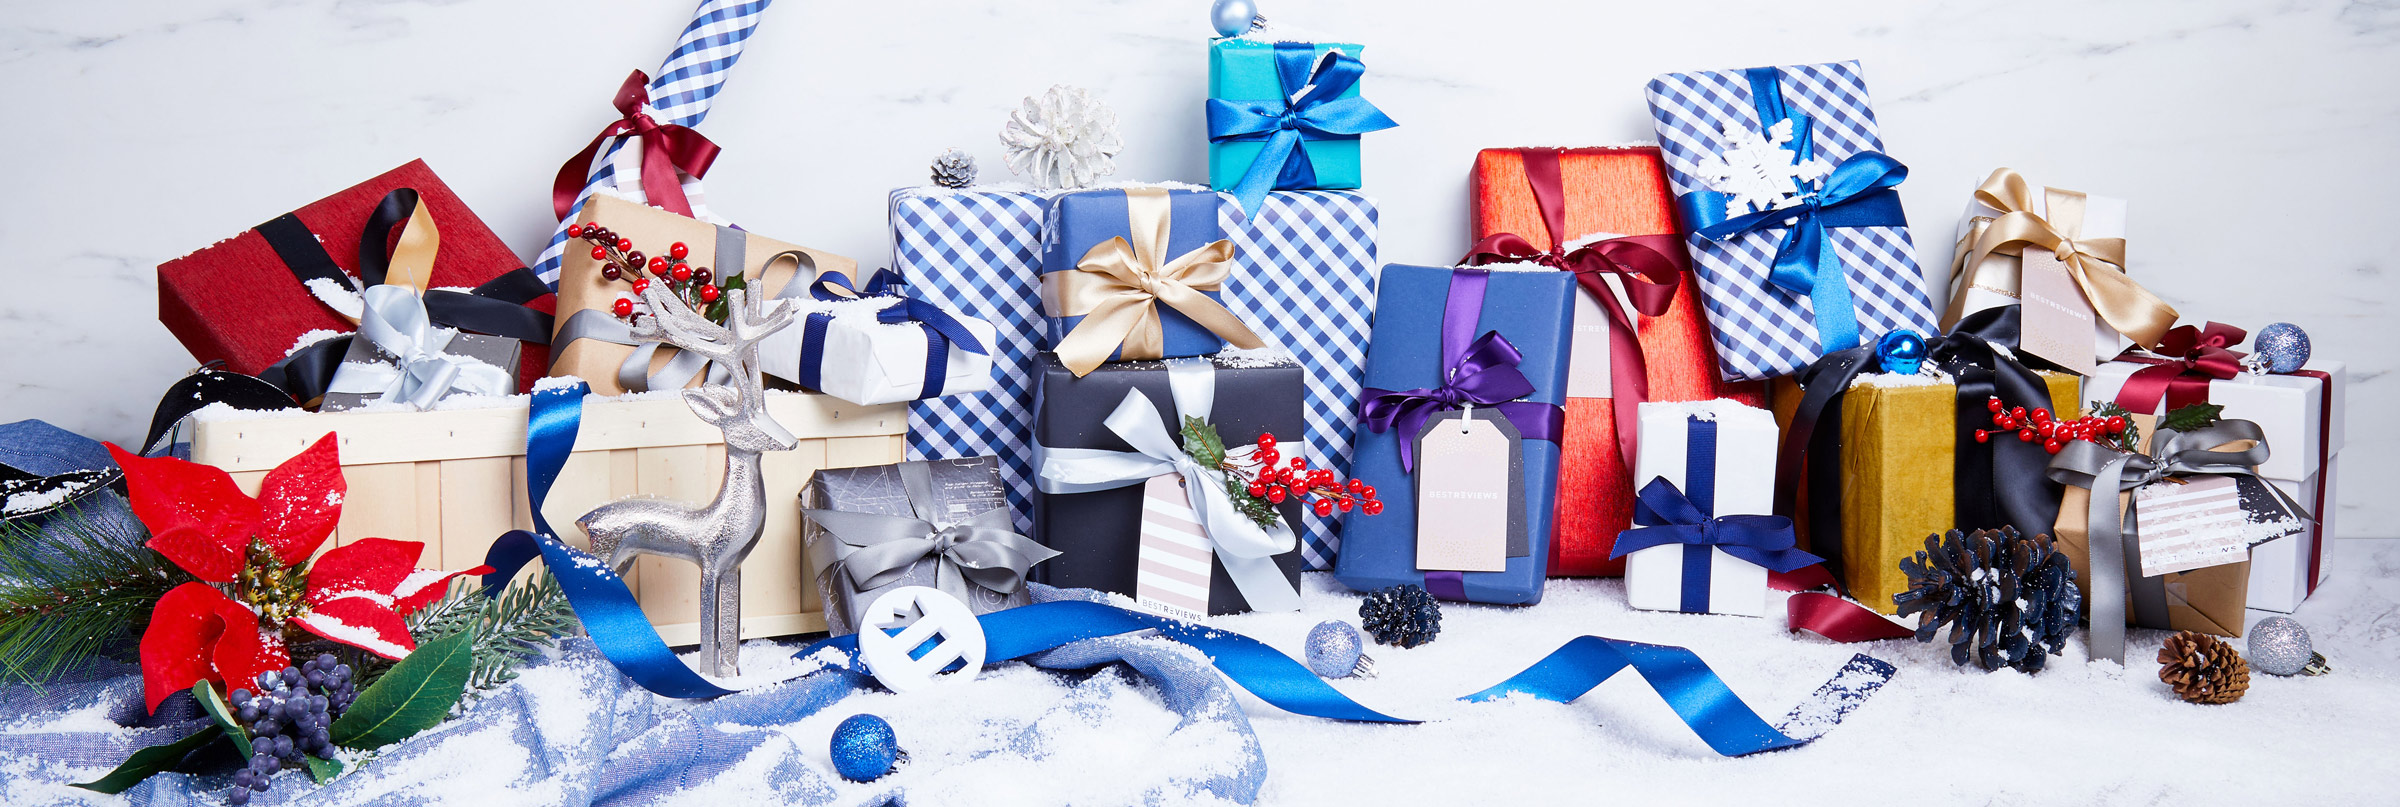 Shop from BestReviews' list of best gifts of 2019